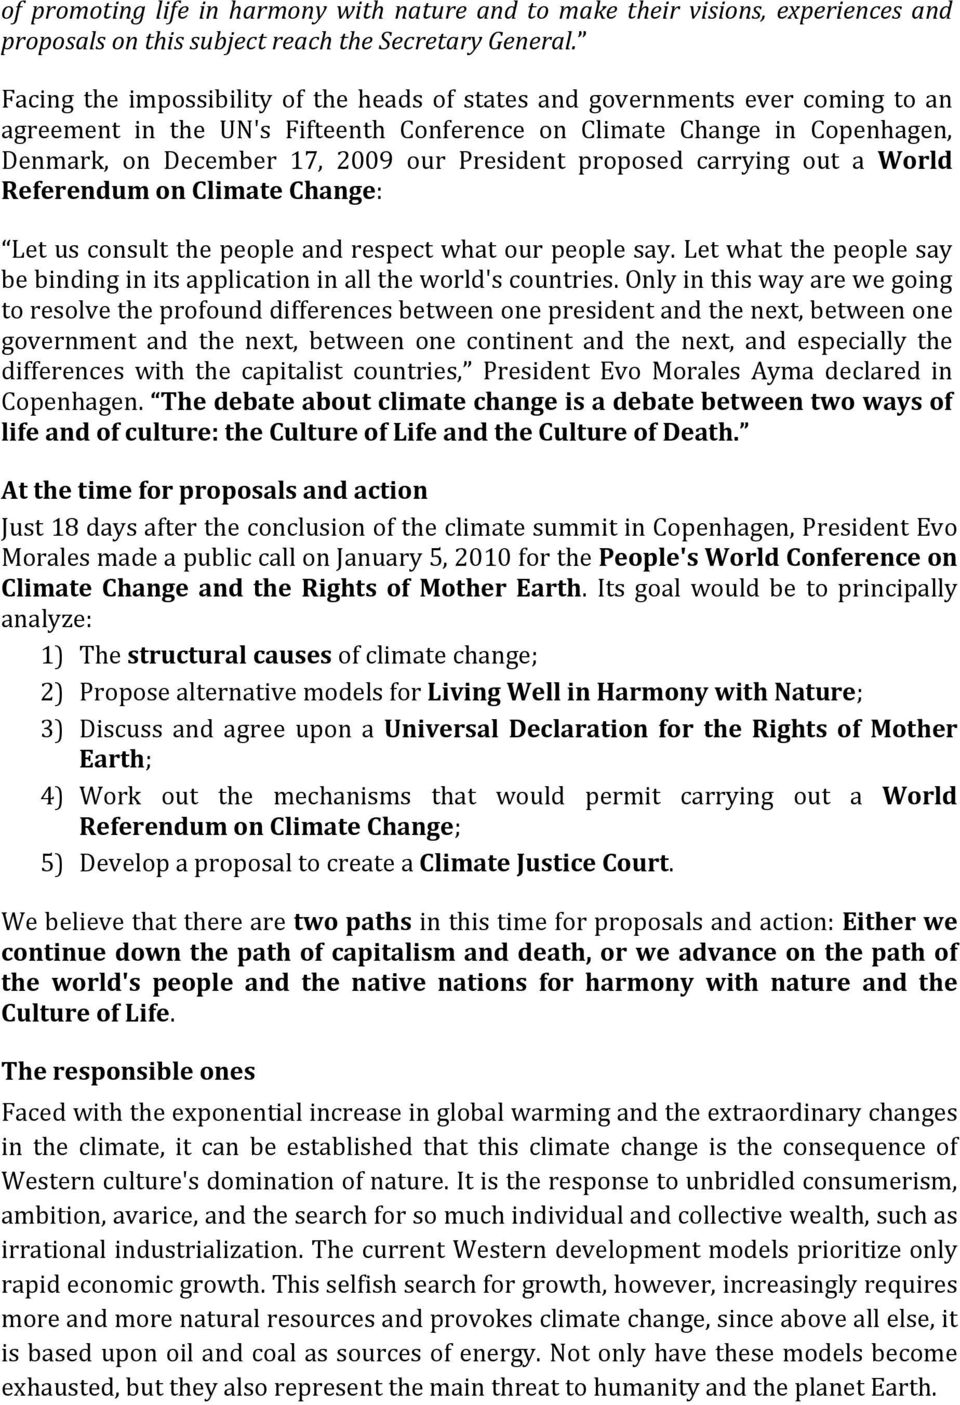 President proposed carrying out a World Referendum on Climate Change: Let us consult the people and respect what our people say.